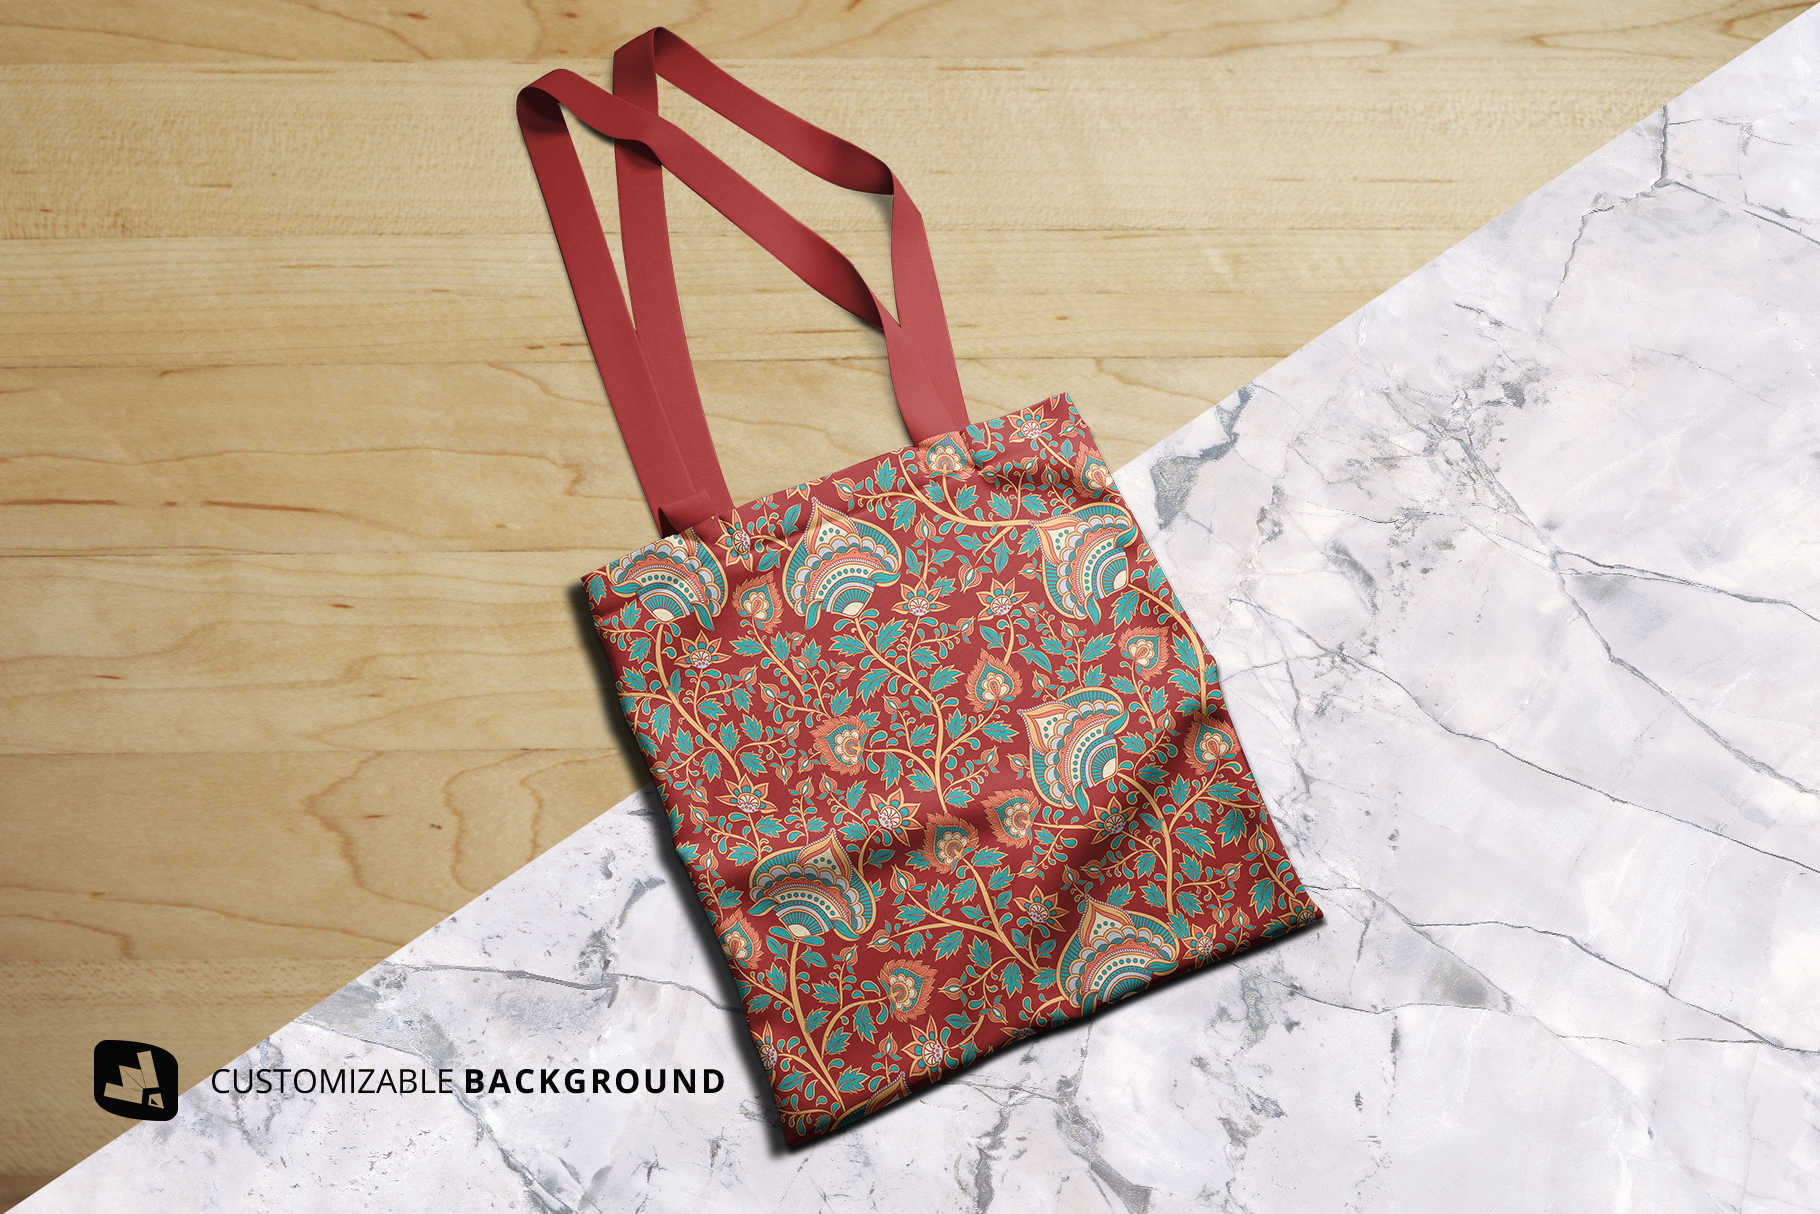 background options of the topview reusable cotton bag mockup